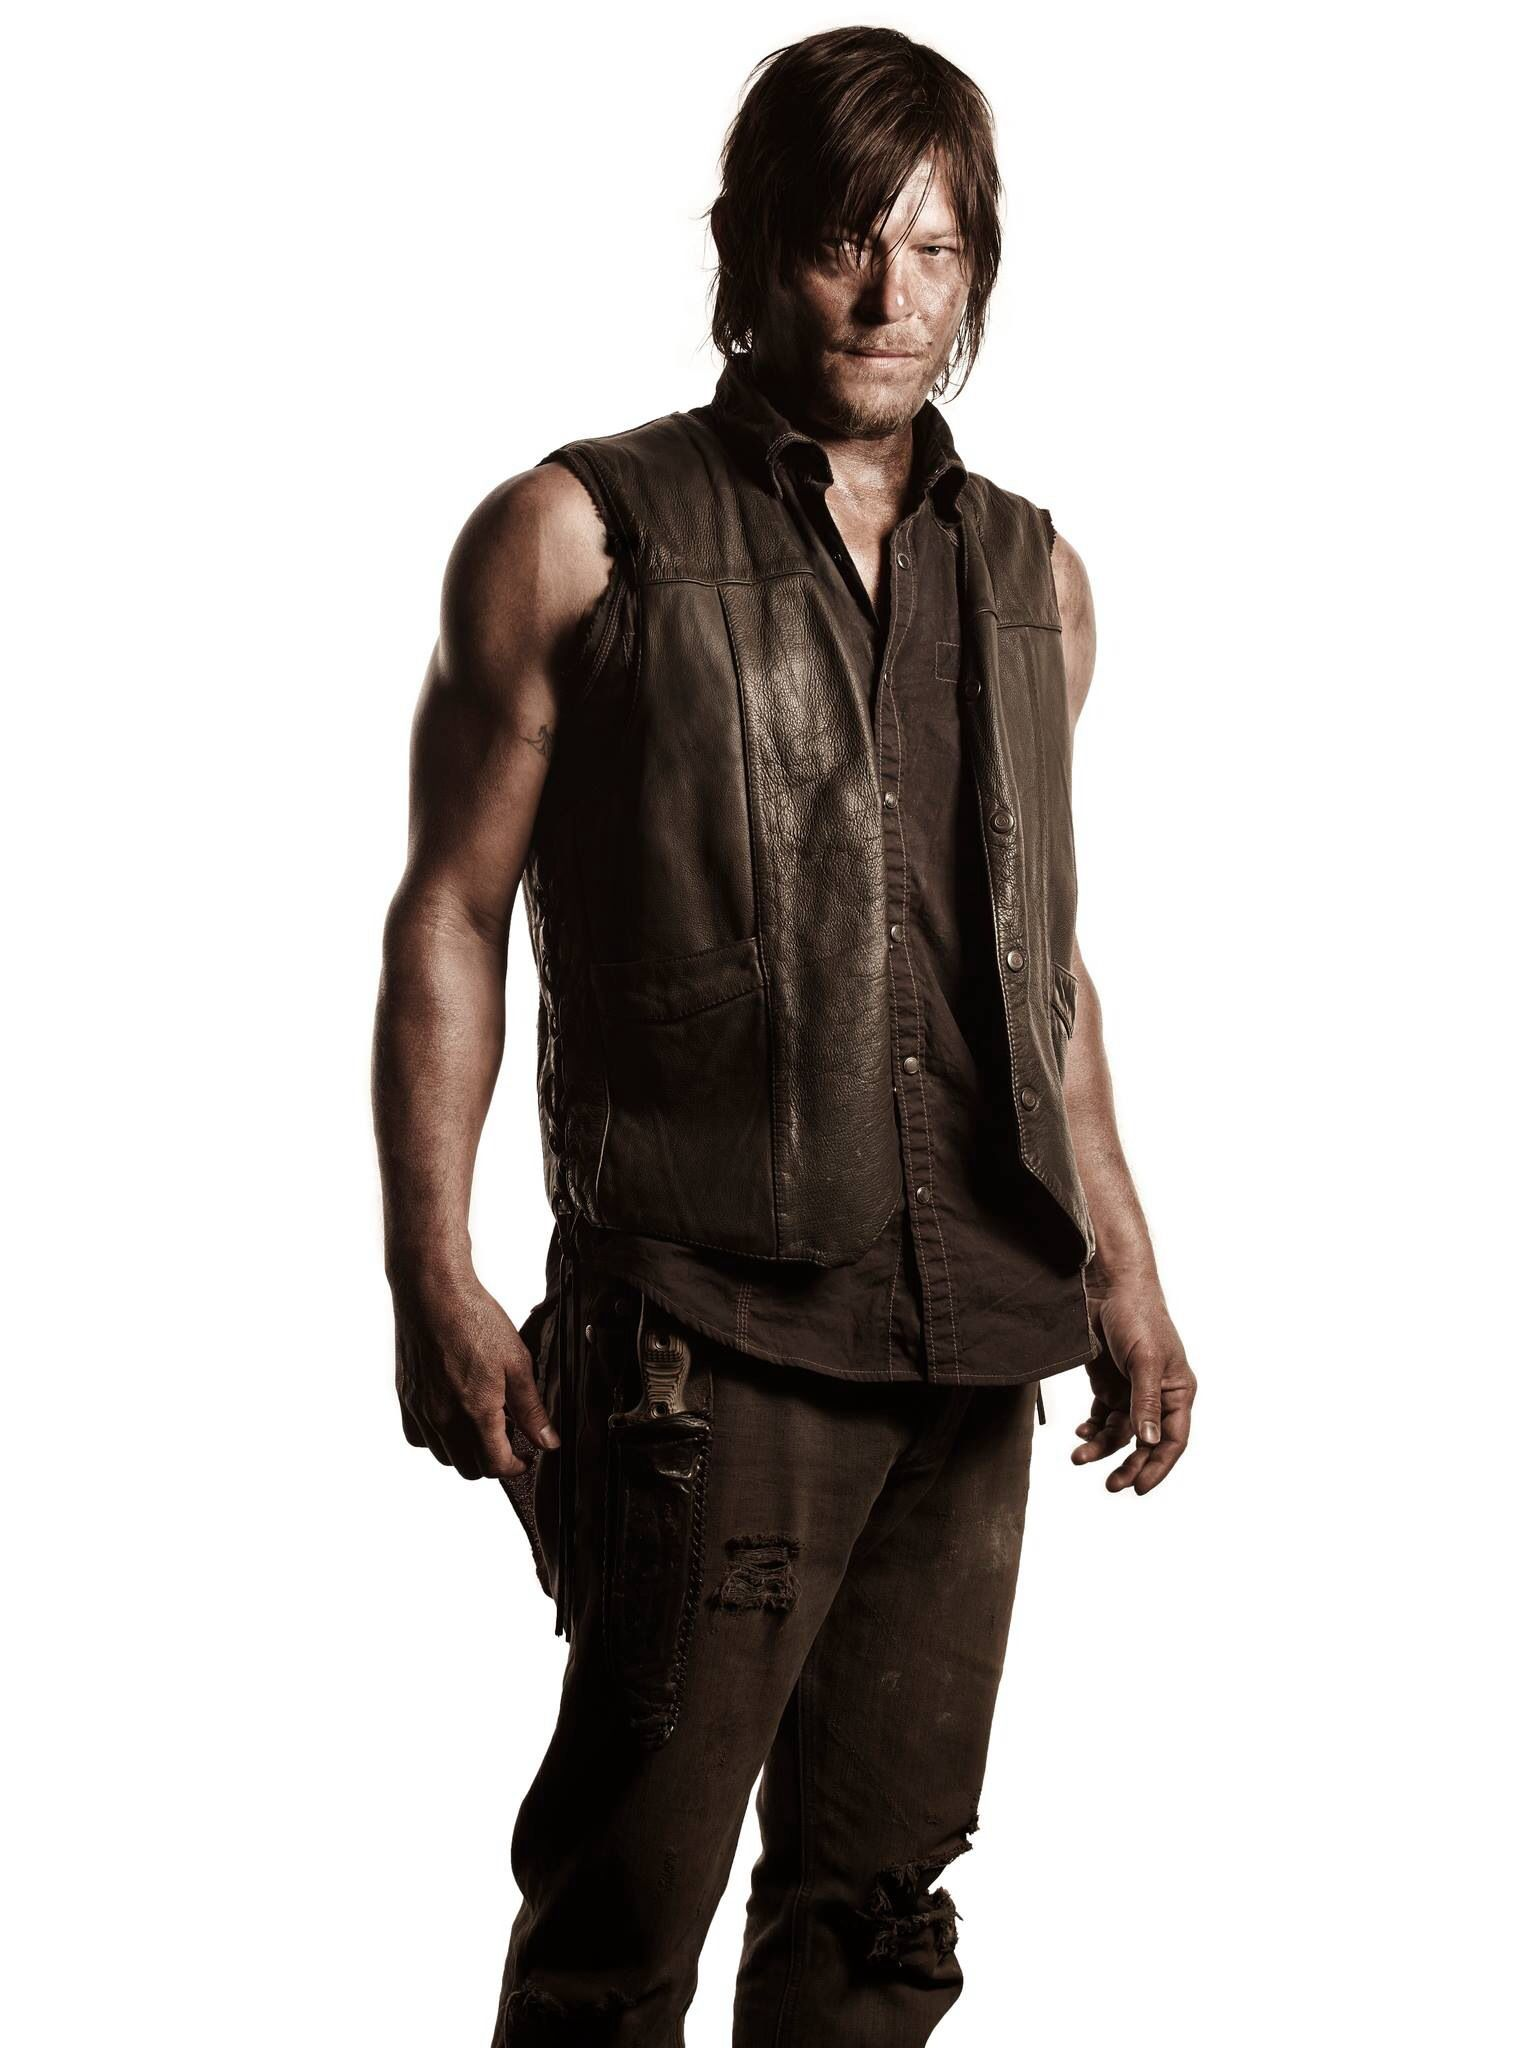 Daryl from The Walking Dead.